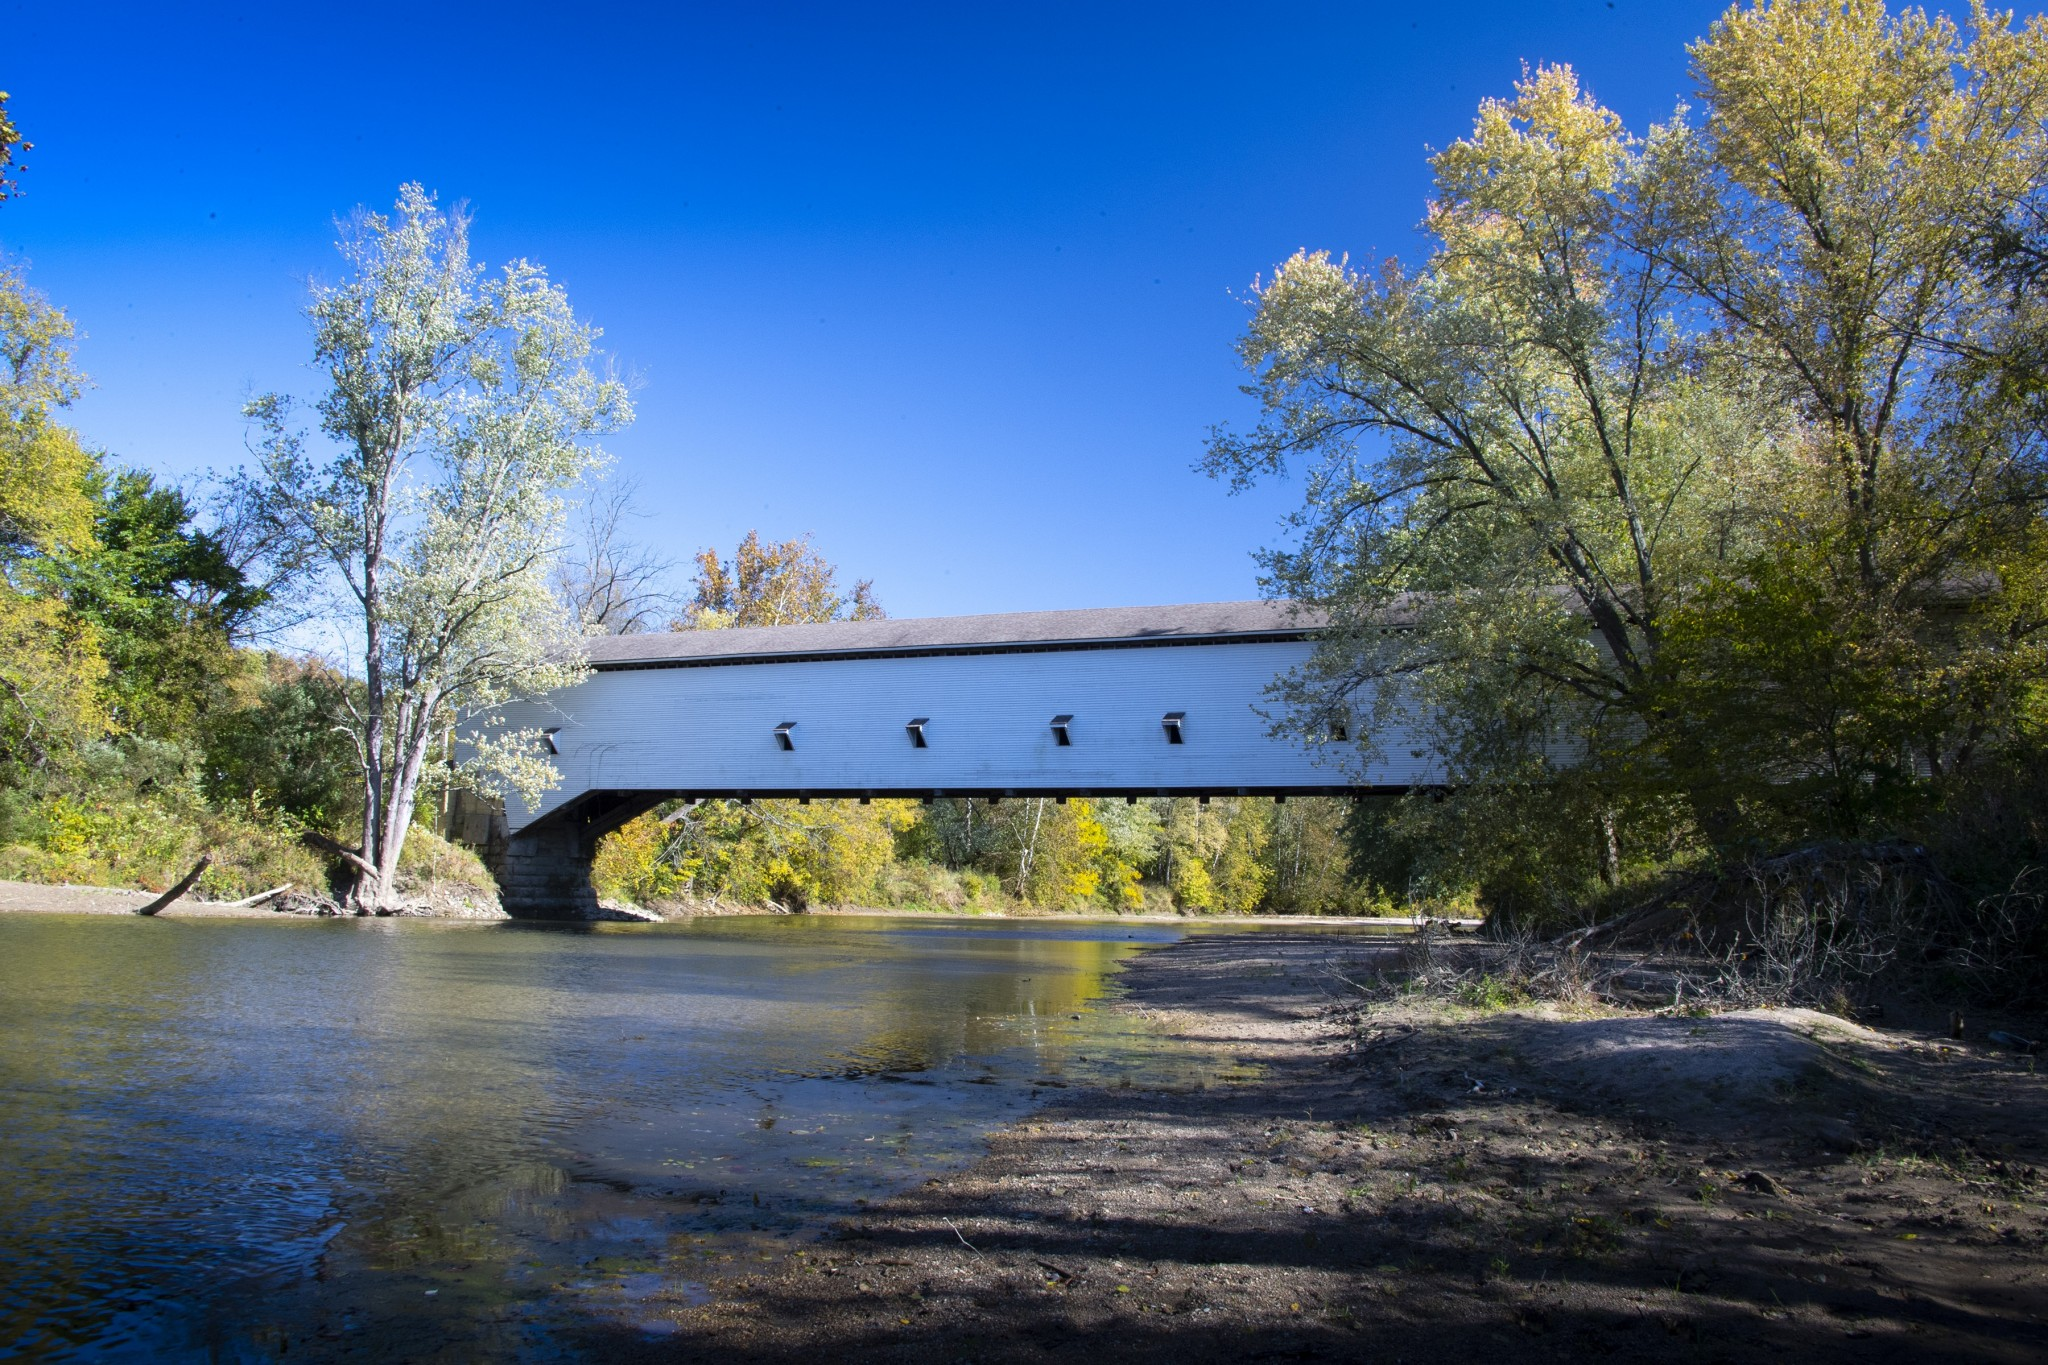 One of the most popular stops in Parke County is the Bridgeton Covered Bridge and Mill, which is still in operation and open to visitors. (Photo by Art Weber)